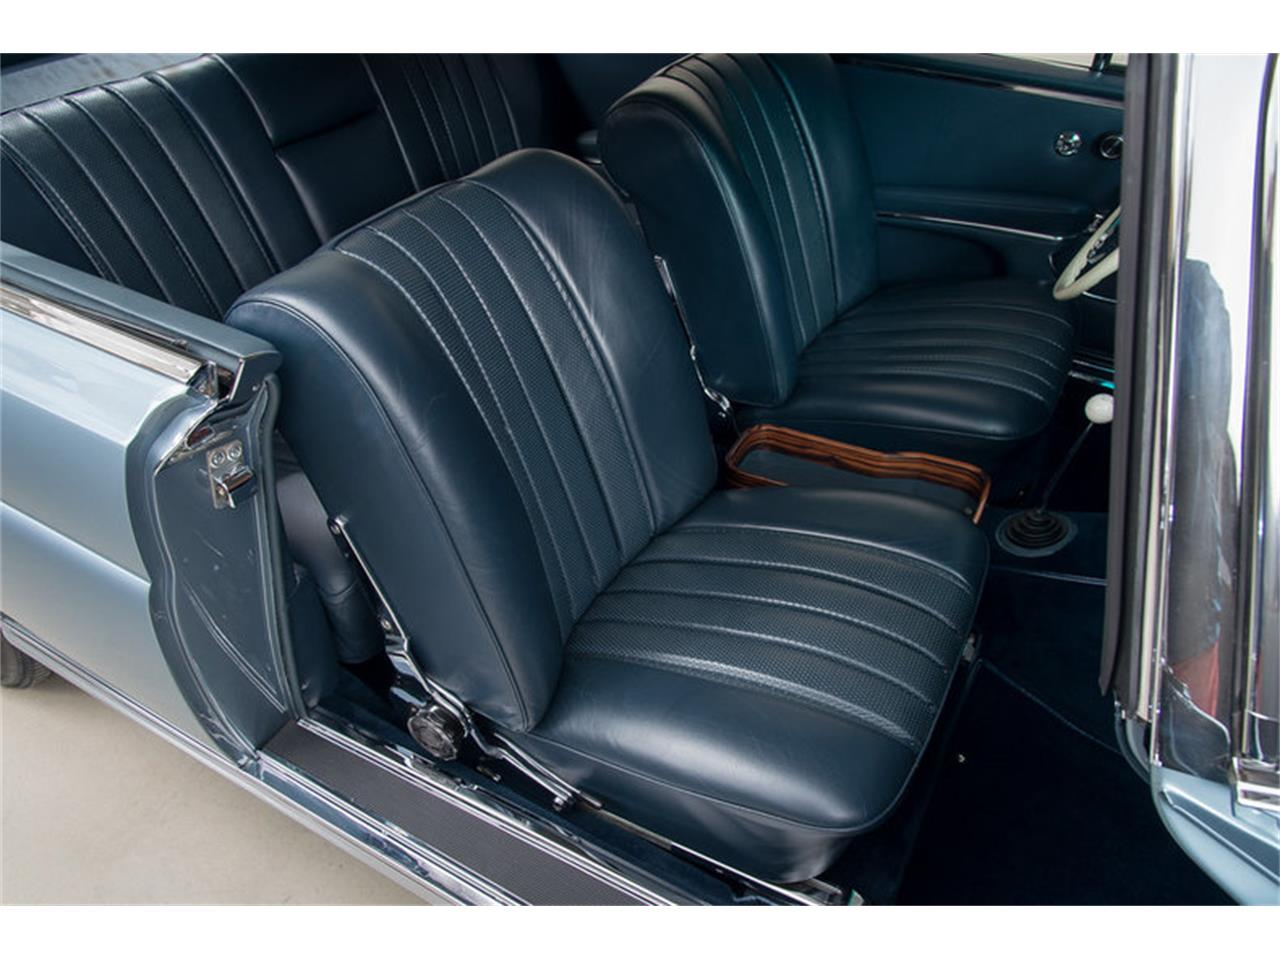 Large Picture of Classic '66 Mercedes-Benz 250SE located in California Auction Vehicle Offered by Canepa - DSVZ